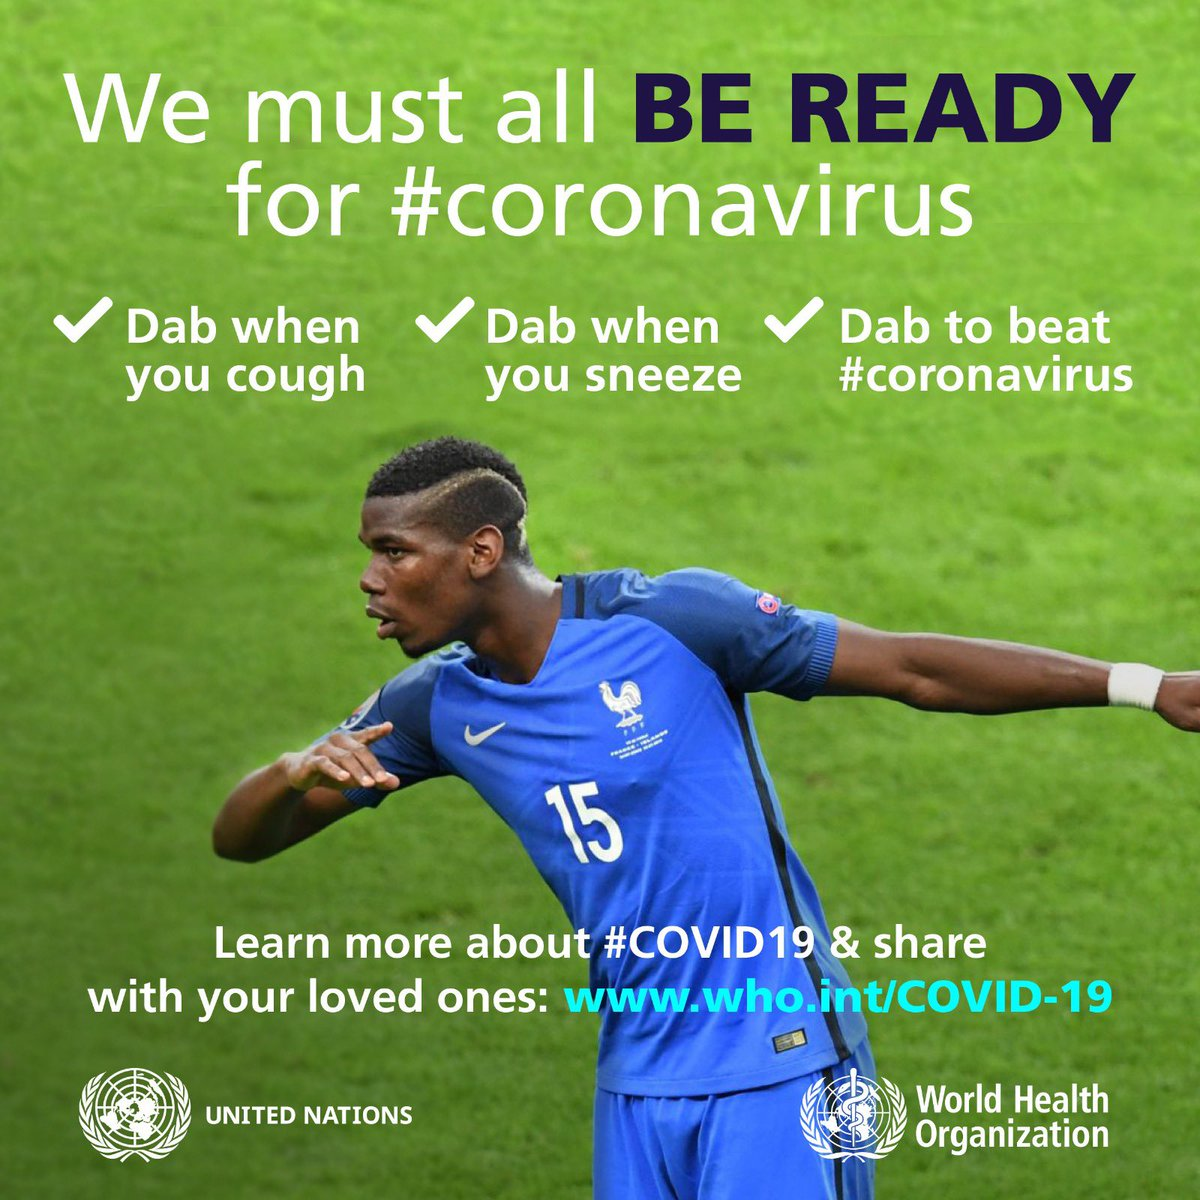 #Dab to beat #coronavirus. Follow @WHO advice to Be Ready for #COVID19 who.int/COVID-19